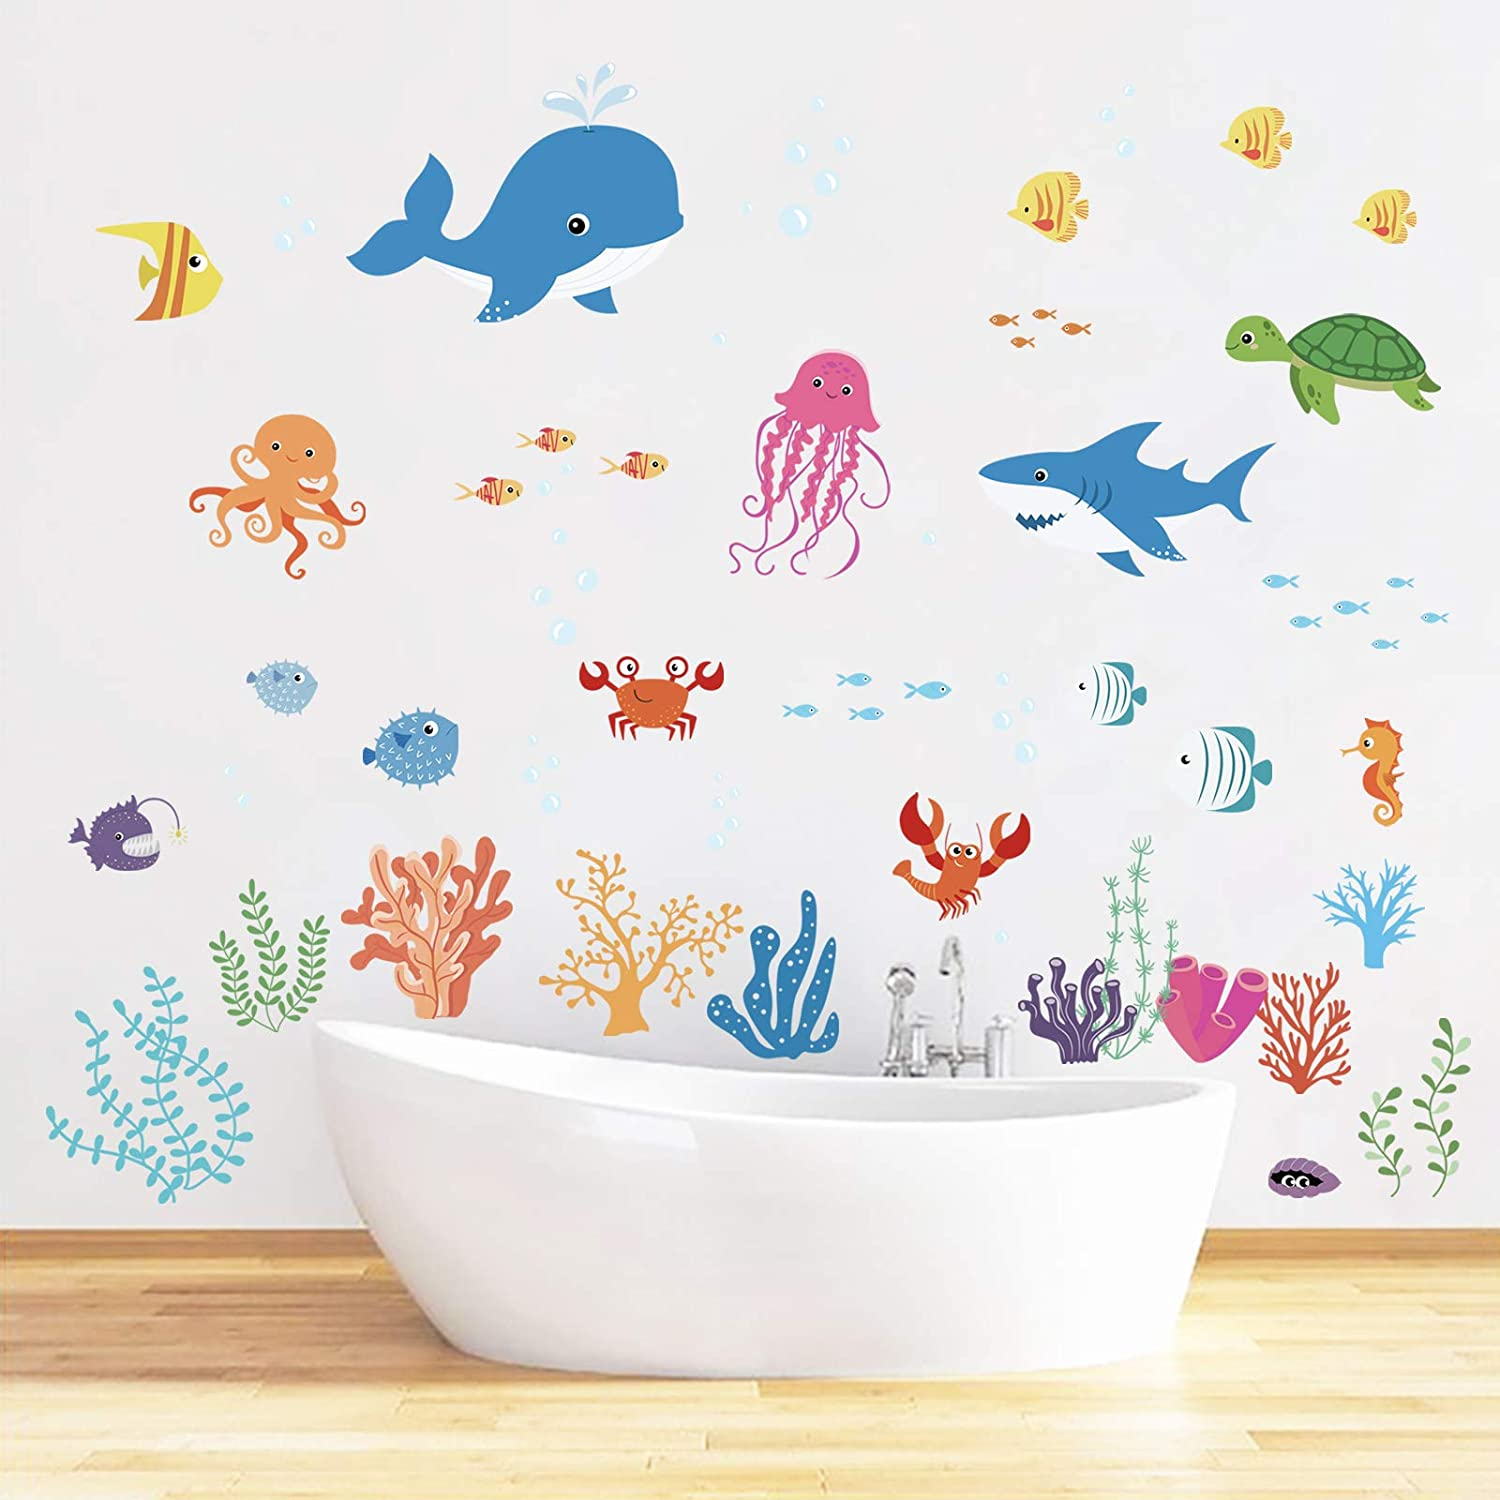 decalmile Tropical Fish Wall Decals Under The Sea Wall Stickers Baby Nursery Kids Bedroom Bathroom Wall Decor